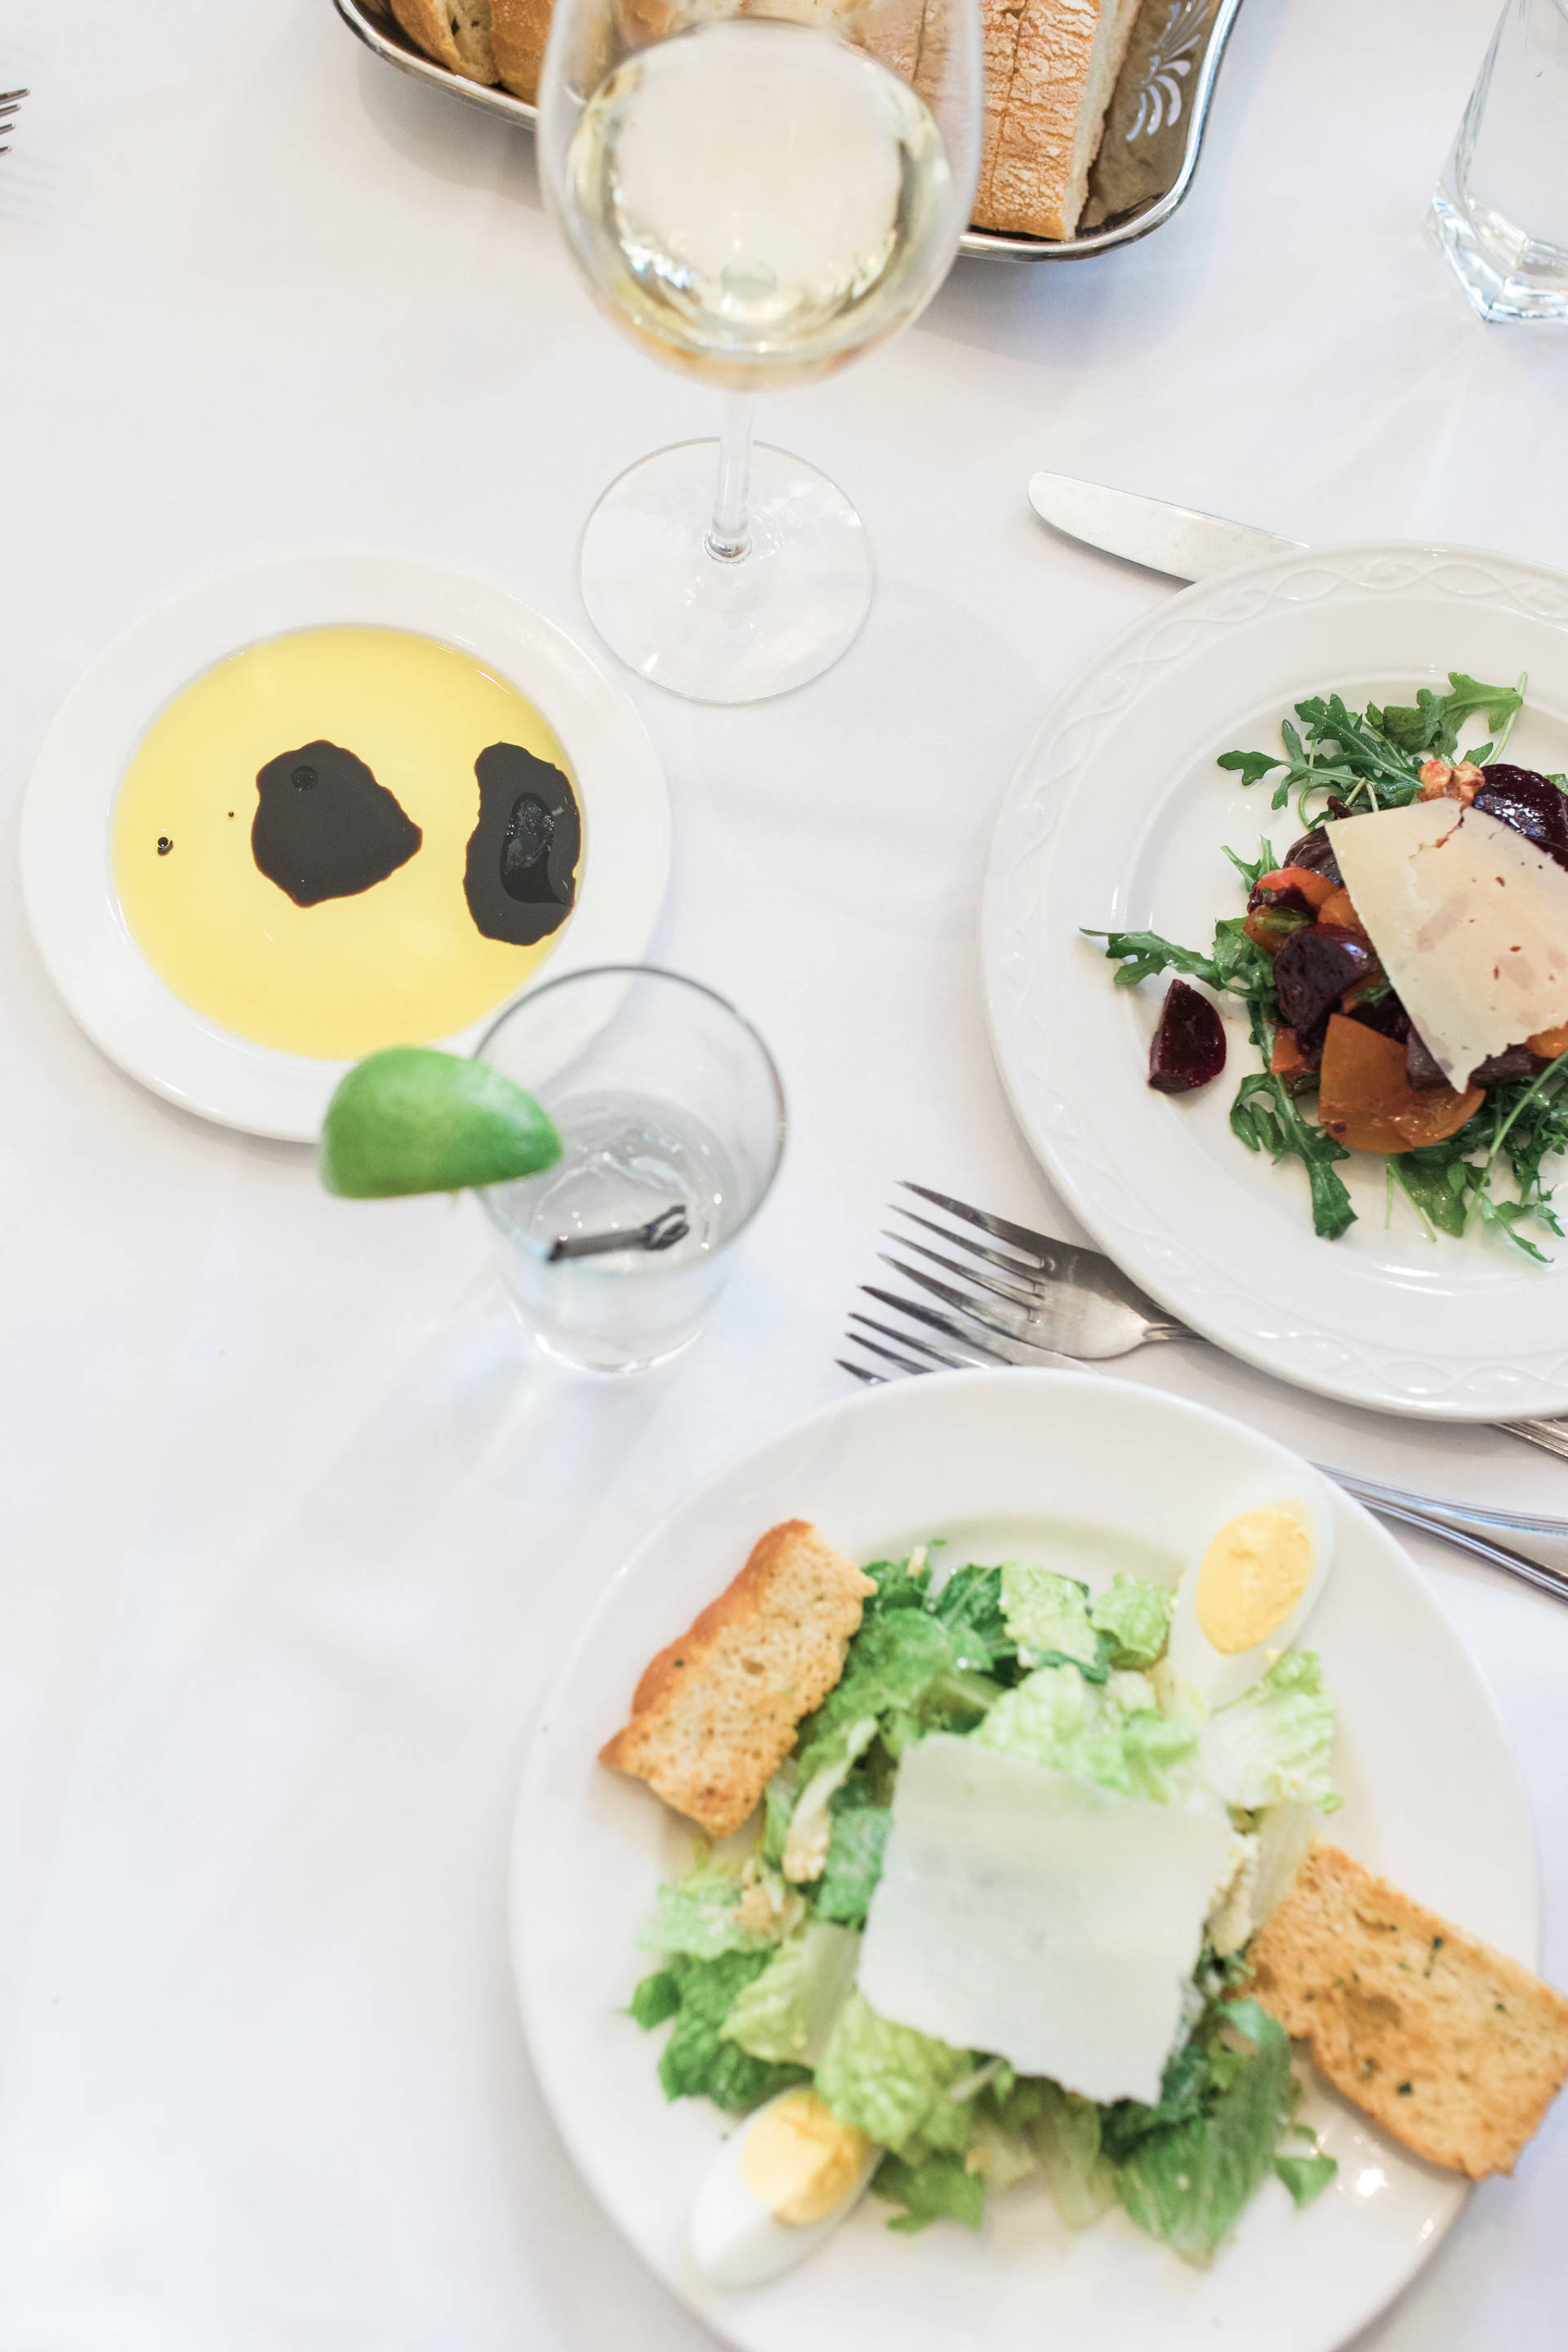 IL Fornaio Dine Downtown Menu: Dine Downtown returns to Sacramento Jan. 12-21. Experience the best of Sacramento's gourmet food for just 35.00.